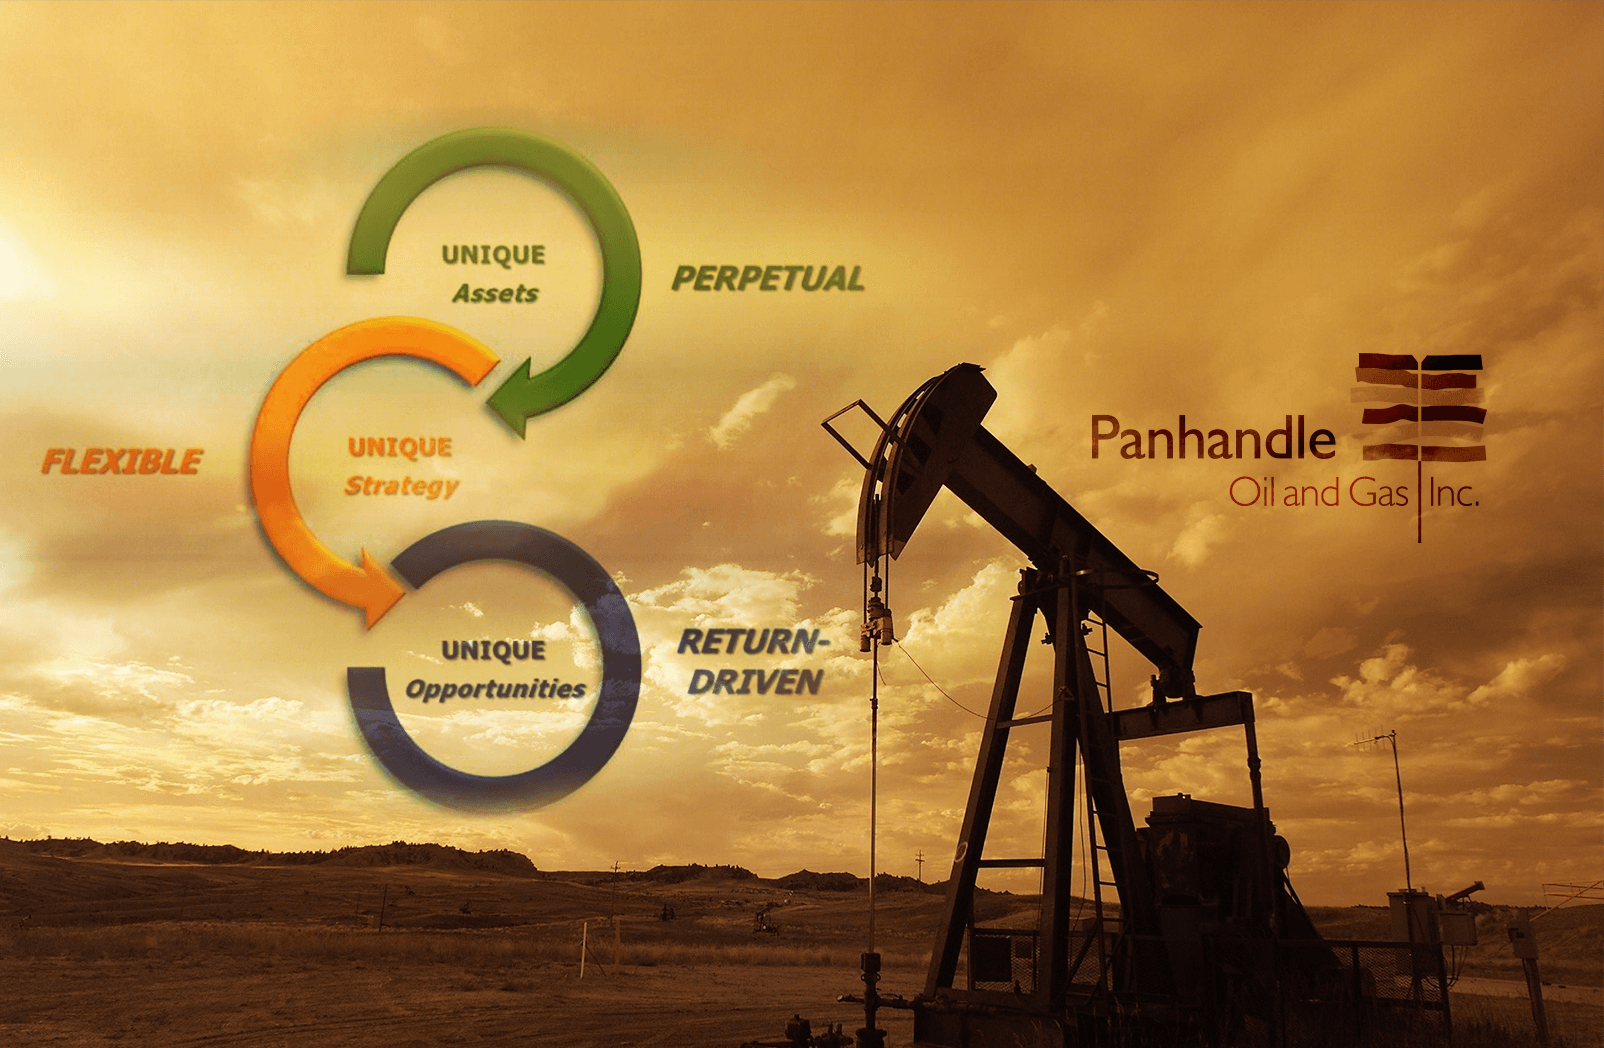 Diagram showing the Perpetual, Flexible, and Return-Driven Strategies with a backdrop of a oil pump as the sun sets.